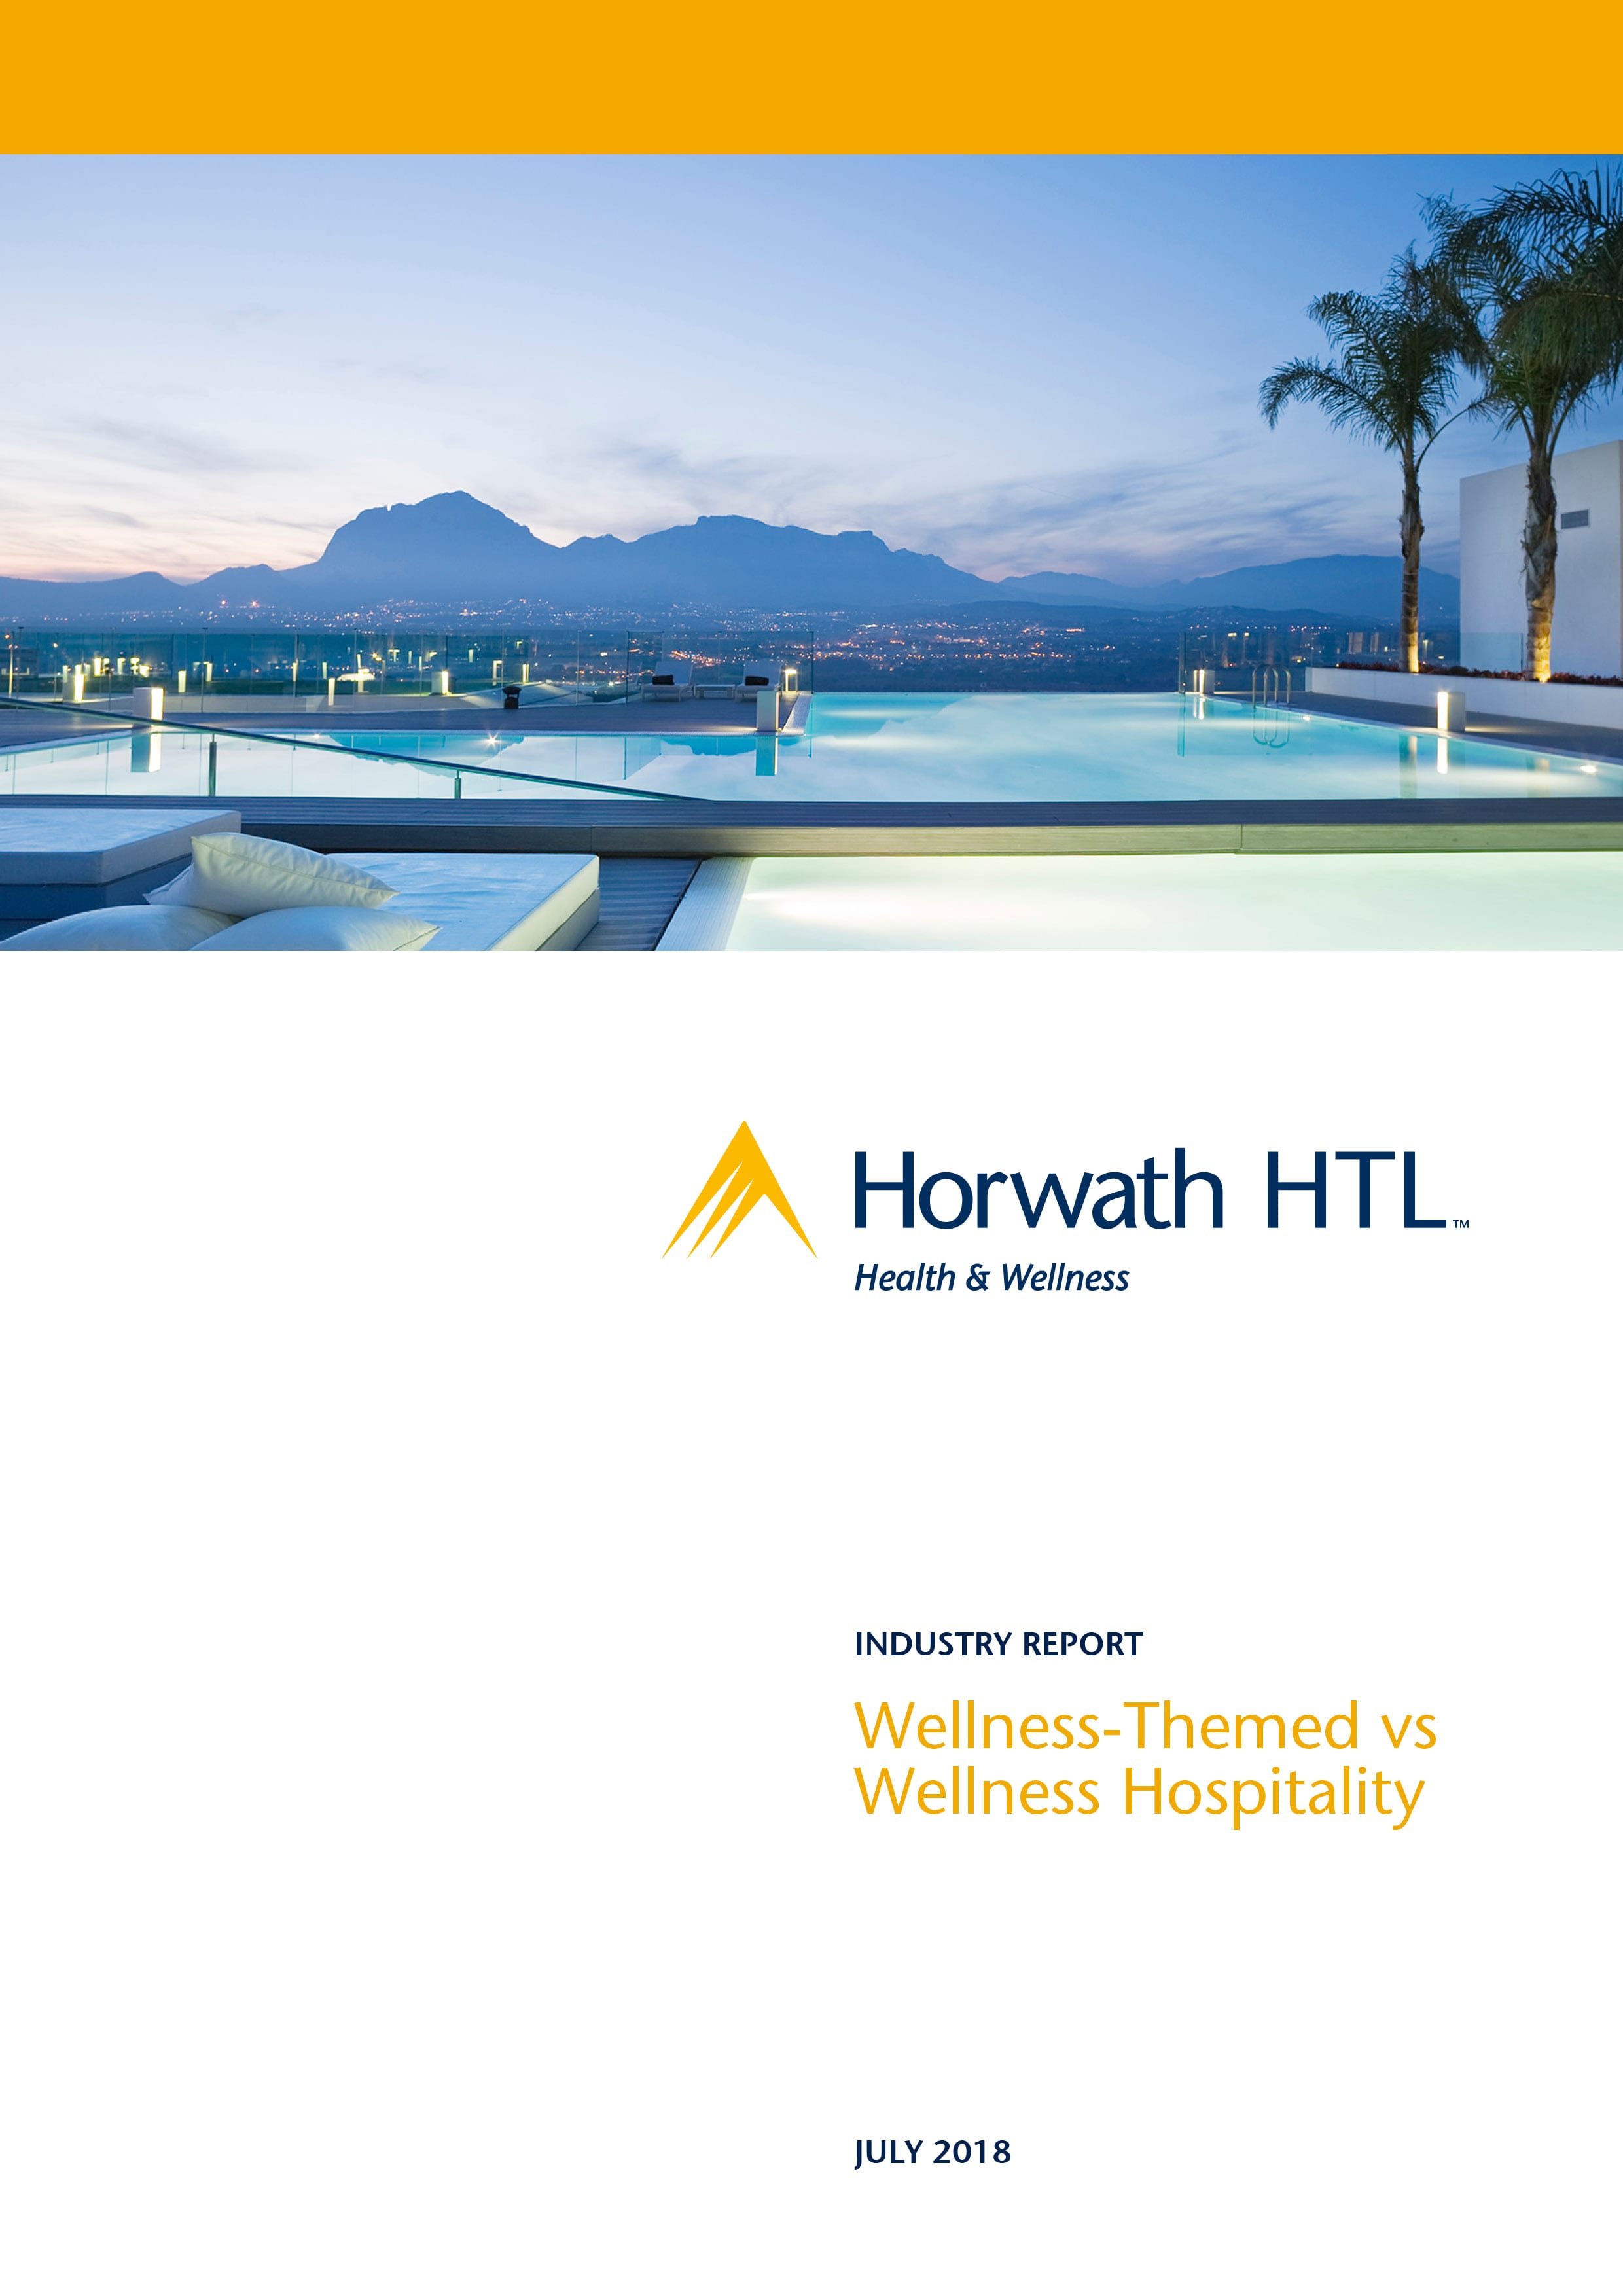 HHTL Wellness Cover